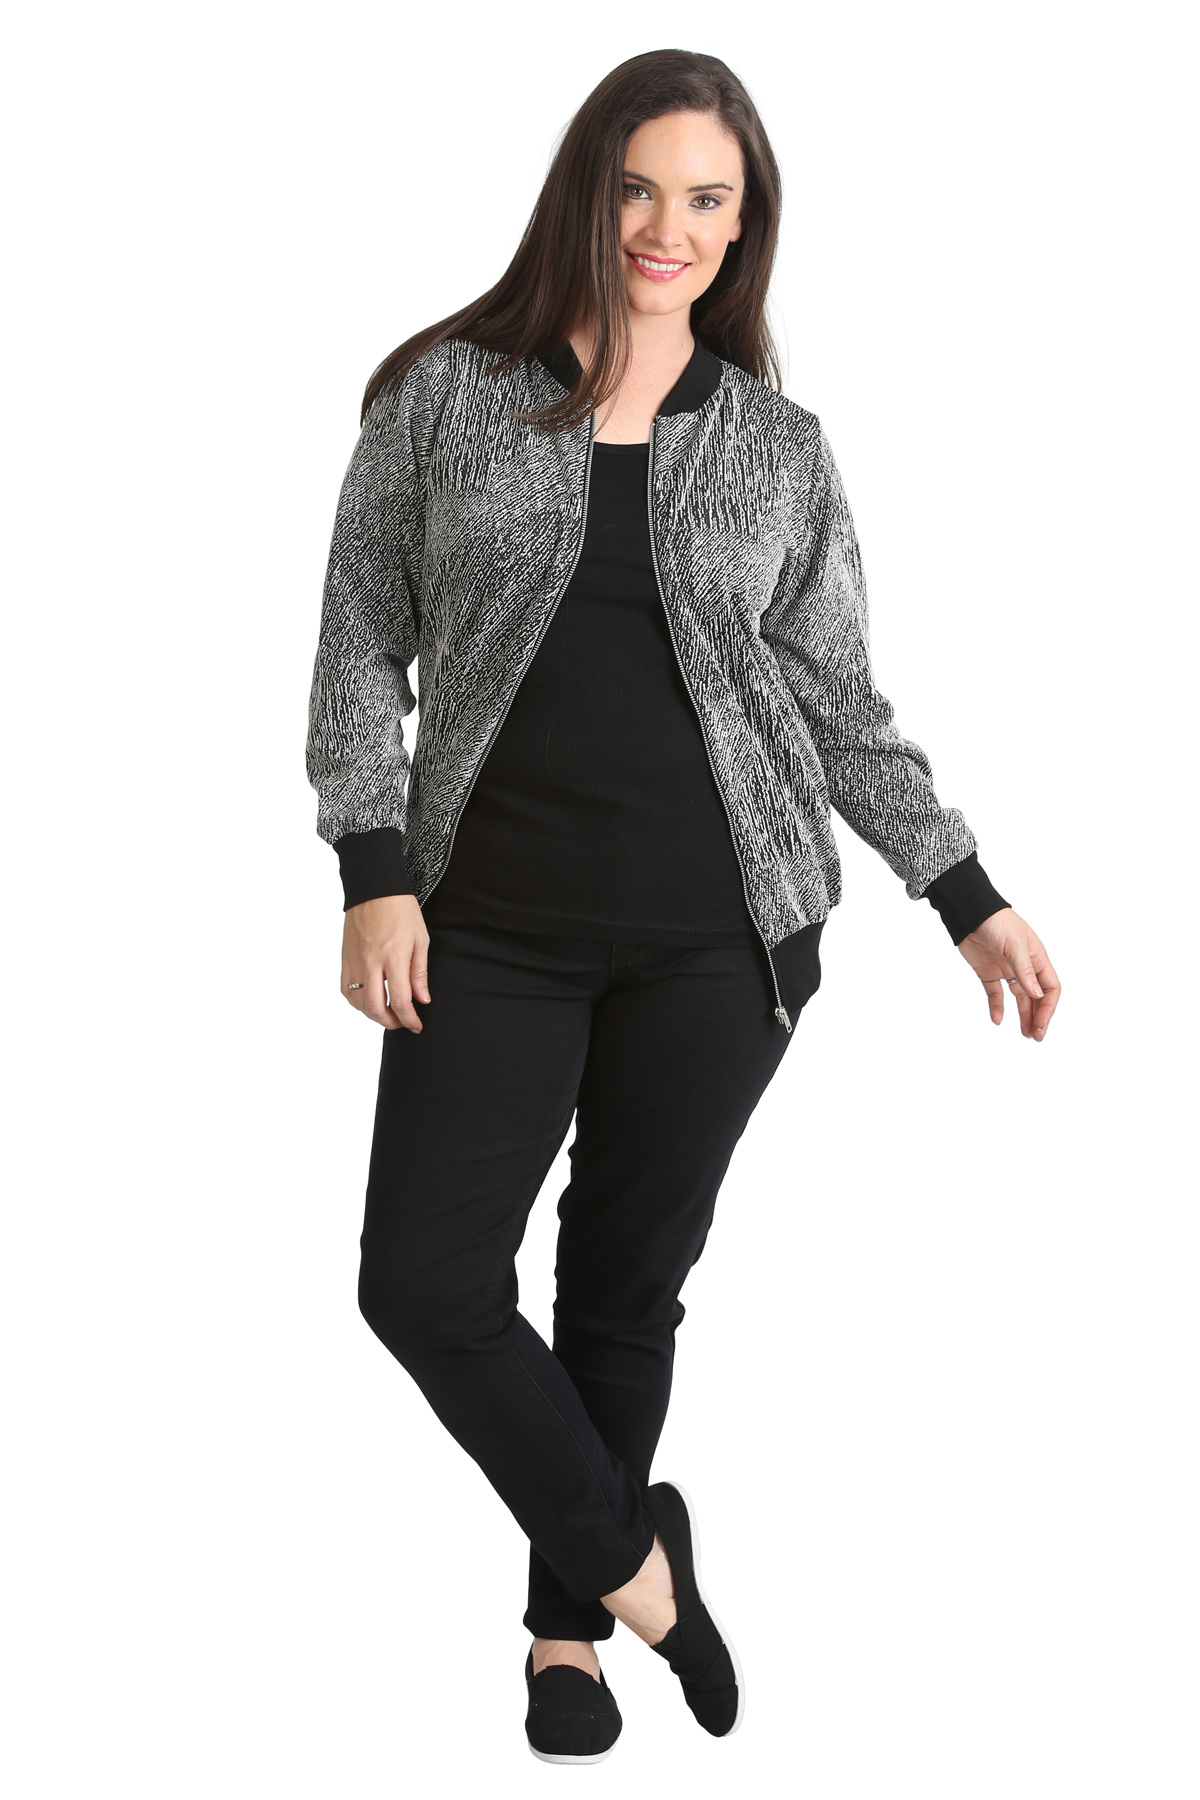 Womens jackets for sale